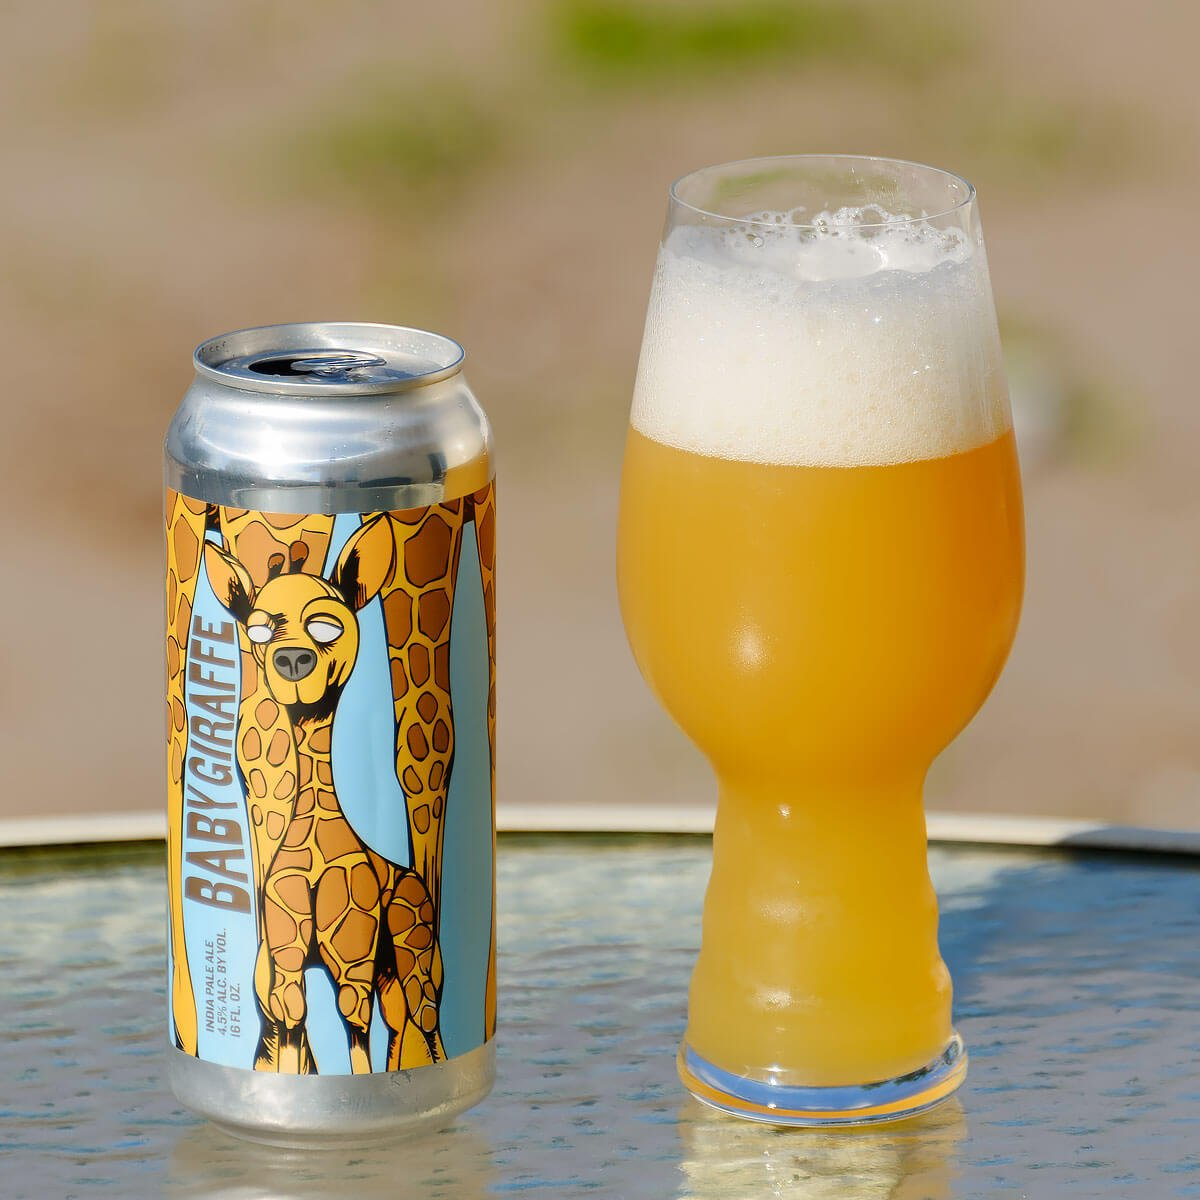 Baby Giraffe, a Session IPA collaboratively brewed by Civil Society Brewing Co. and Marble Brewery